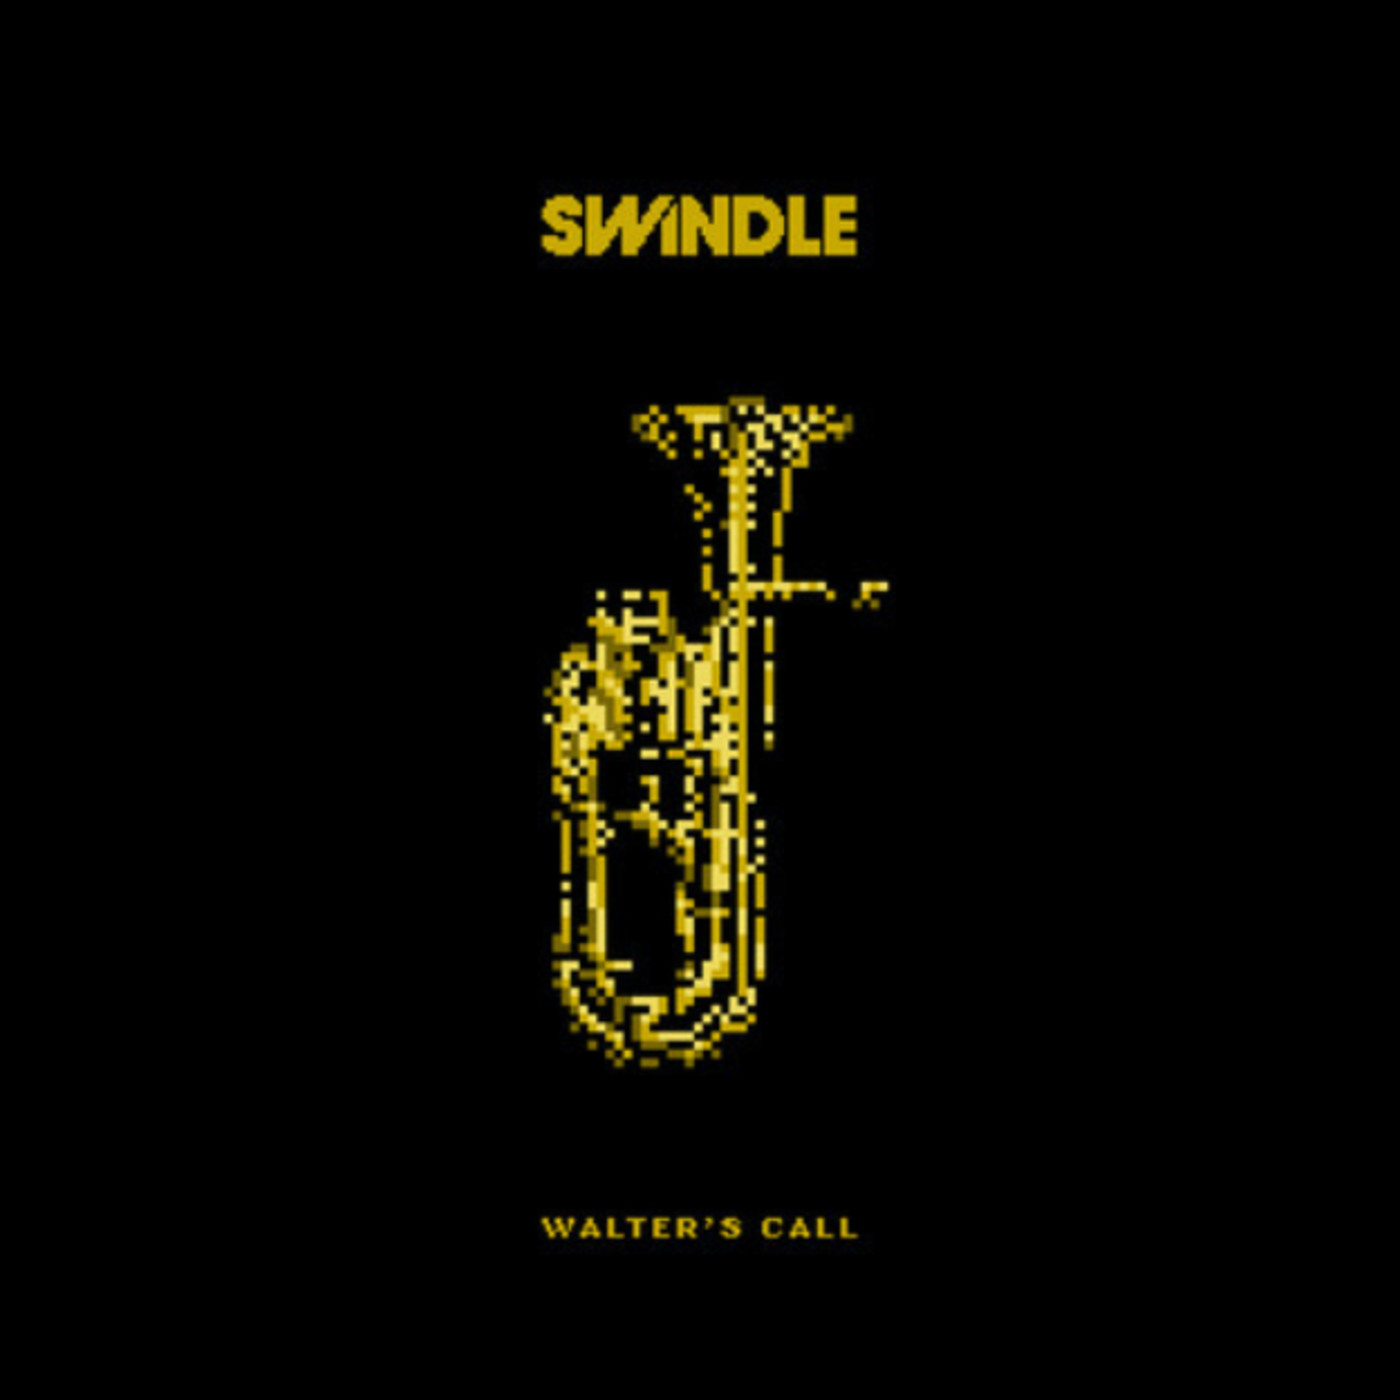 swindle-walters-call